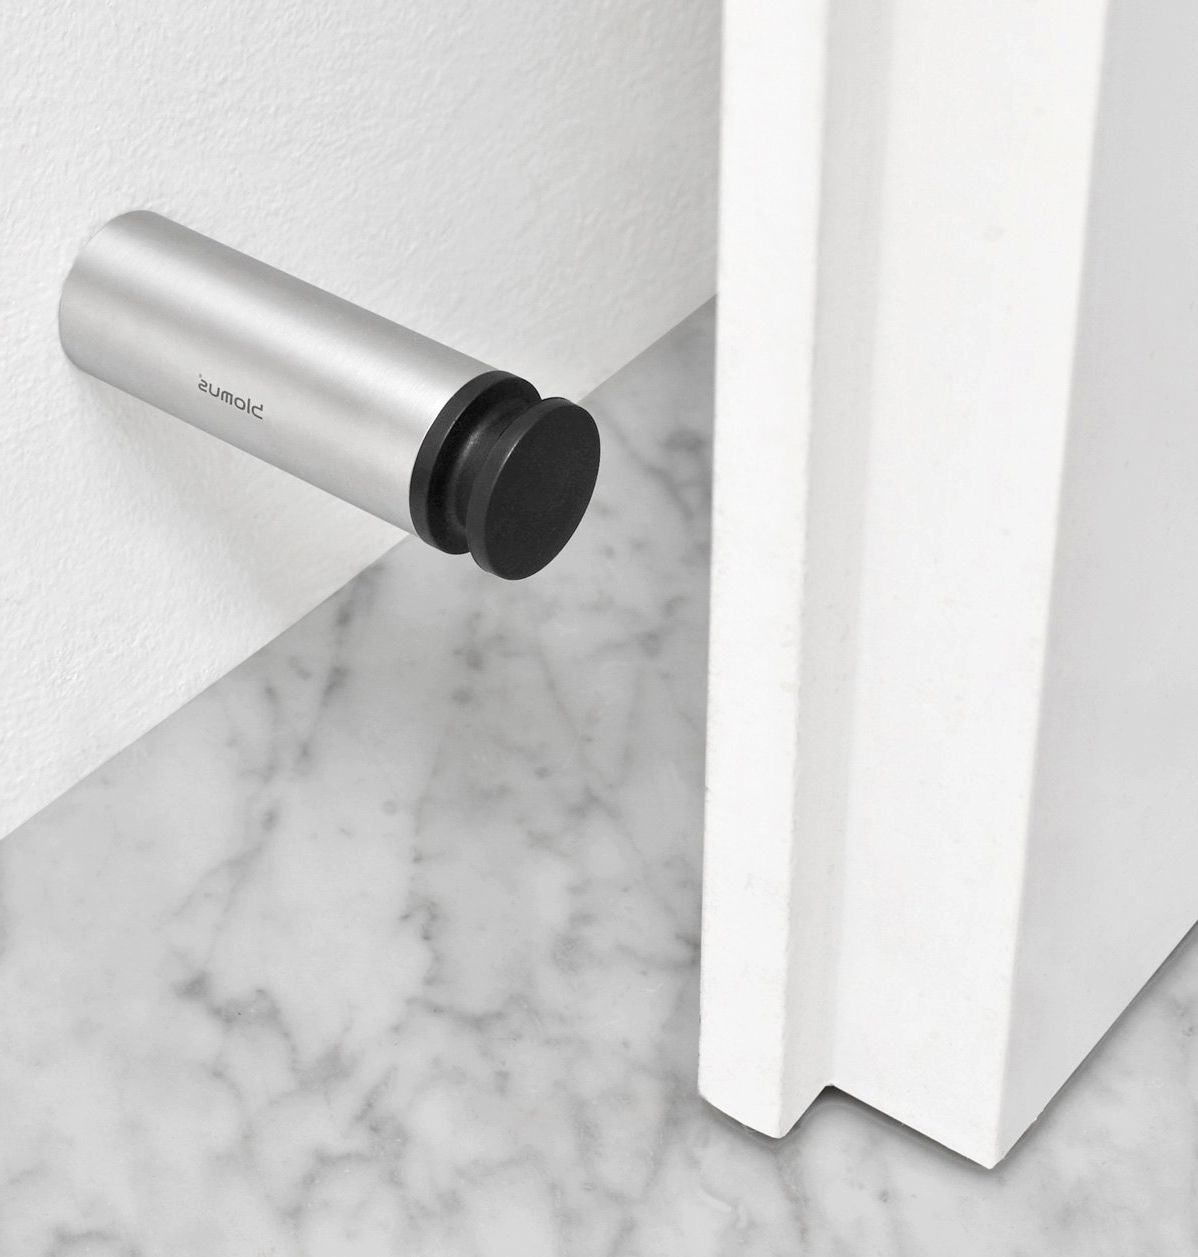 Lovely Metal Wall Holder   Door Stoppers Or Holders: Functions, Types, Installation